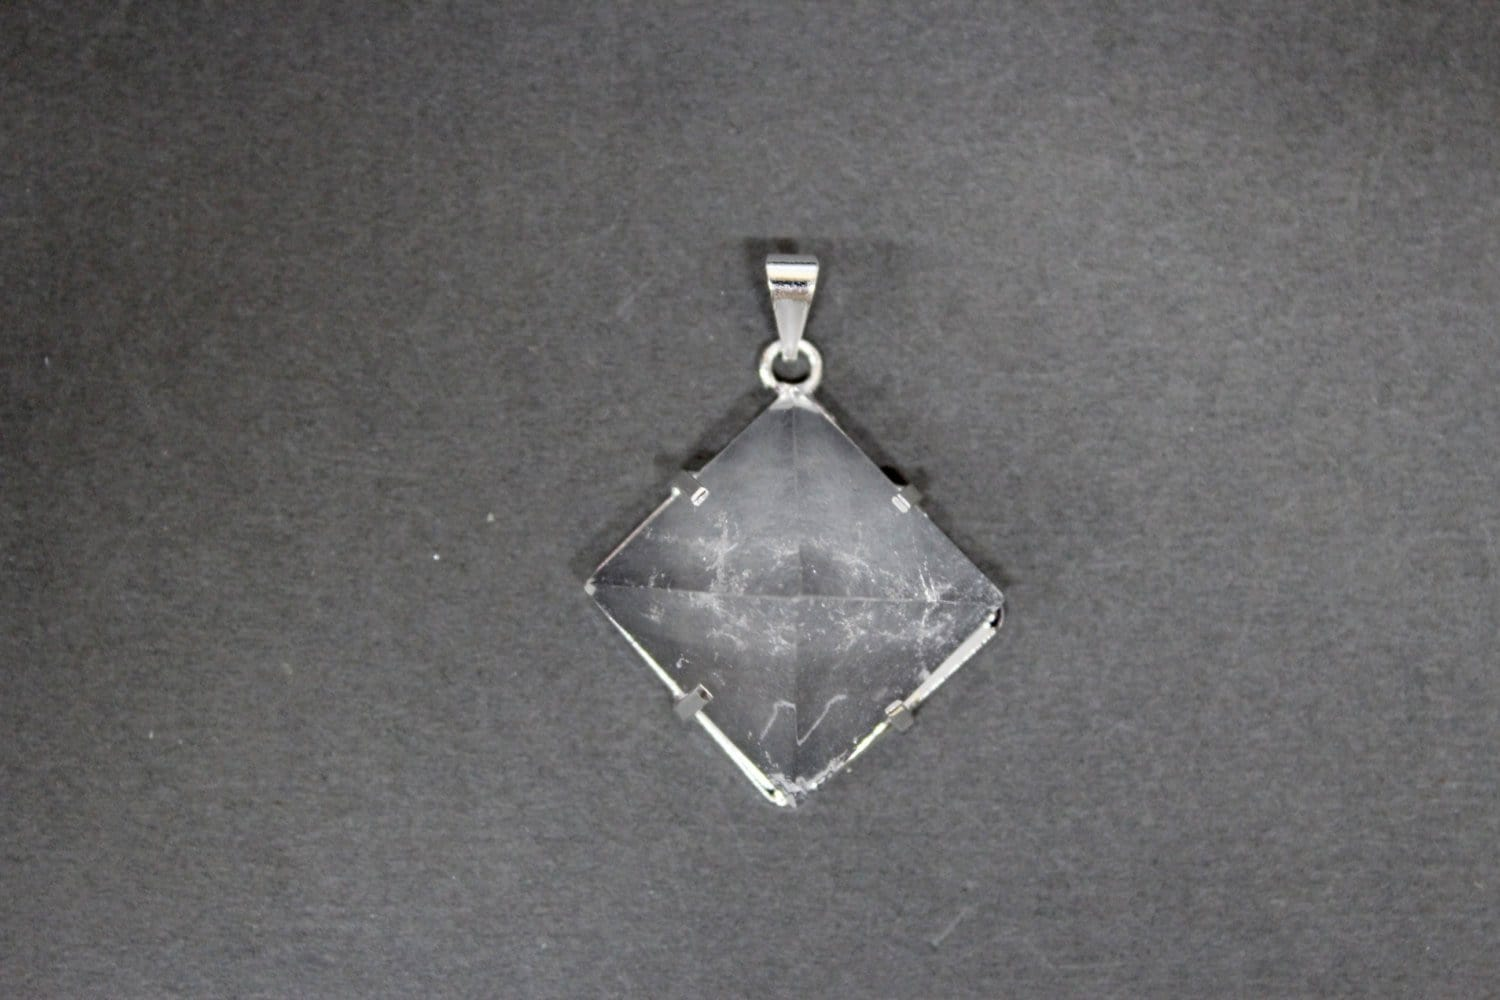 Pyramid Pendant With Silver Plated Bail- Clear Crystal Quartz - Jewelry Supplies - Energy - Protection -  Chakra Crystal (Rk51B12b-02)